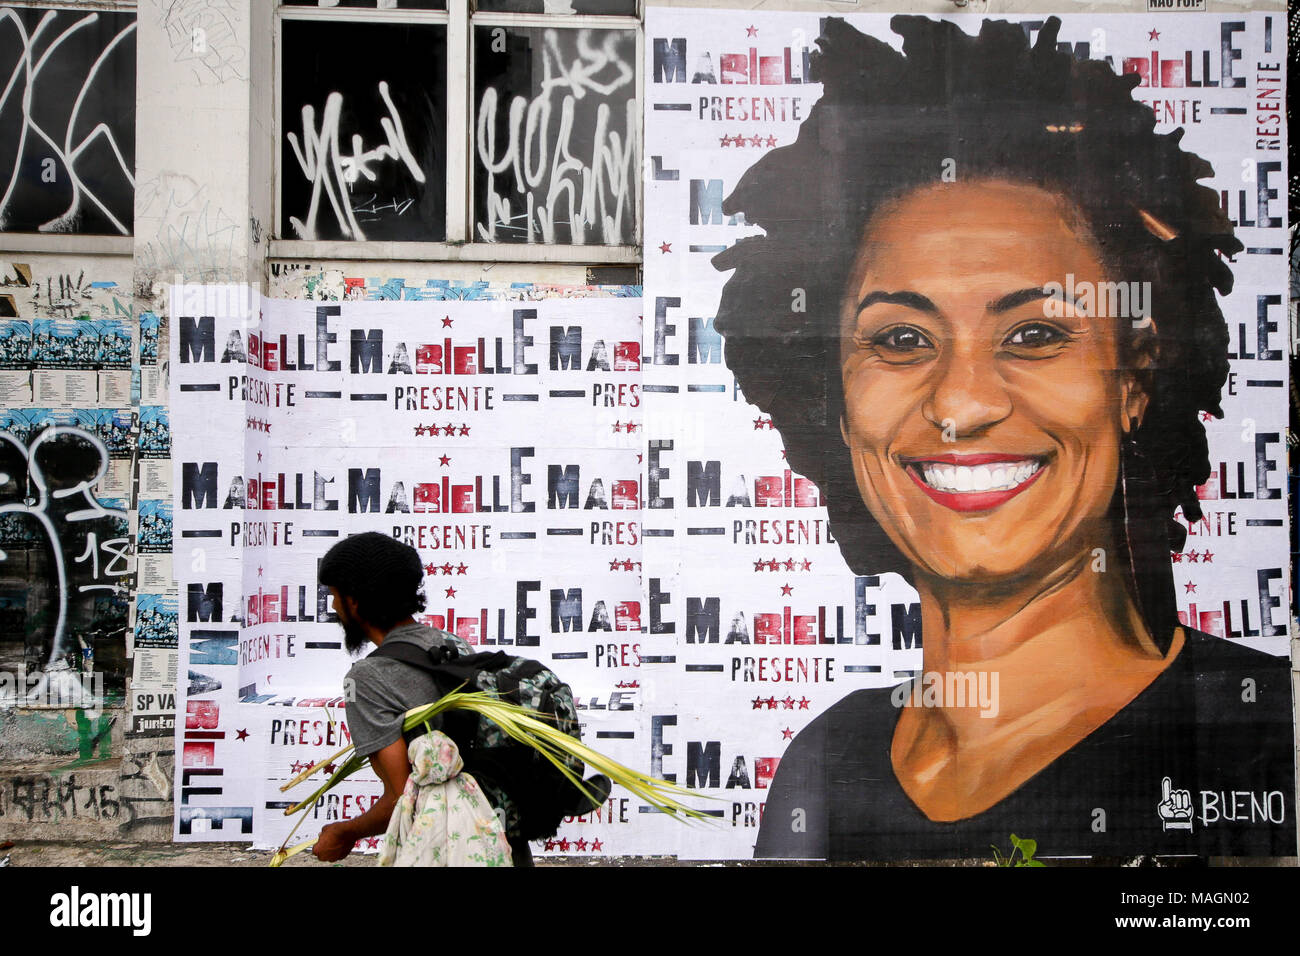 Sao Paulo, Brazil. 2nd Apr, 2018. A giant banner with the printed face of the dead councilwoman in Rio de Janeiro, Marielle Franco, on Monday, 2, acts asking for a solution to the case and in honor of Marielle and driver Anderson Gomes are being called for the whole country. Credit: Dario Oliveira/ZUMA Wire/Alamy Live News - Stock Image